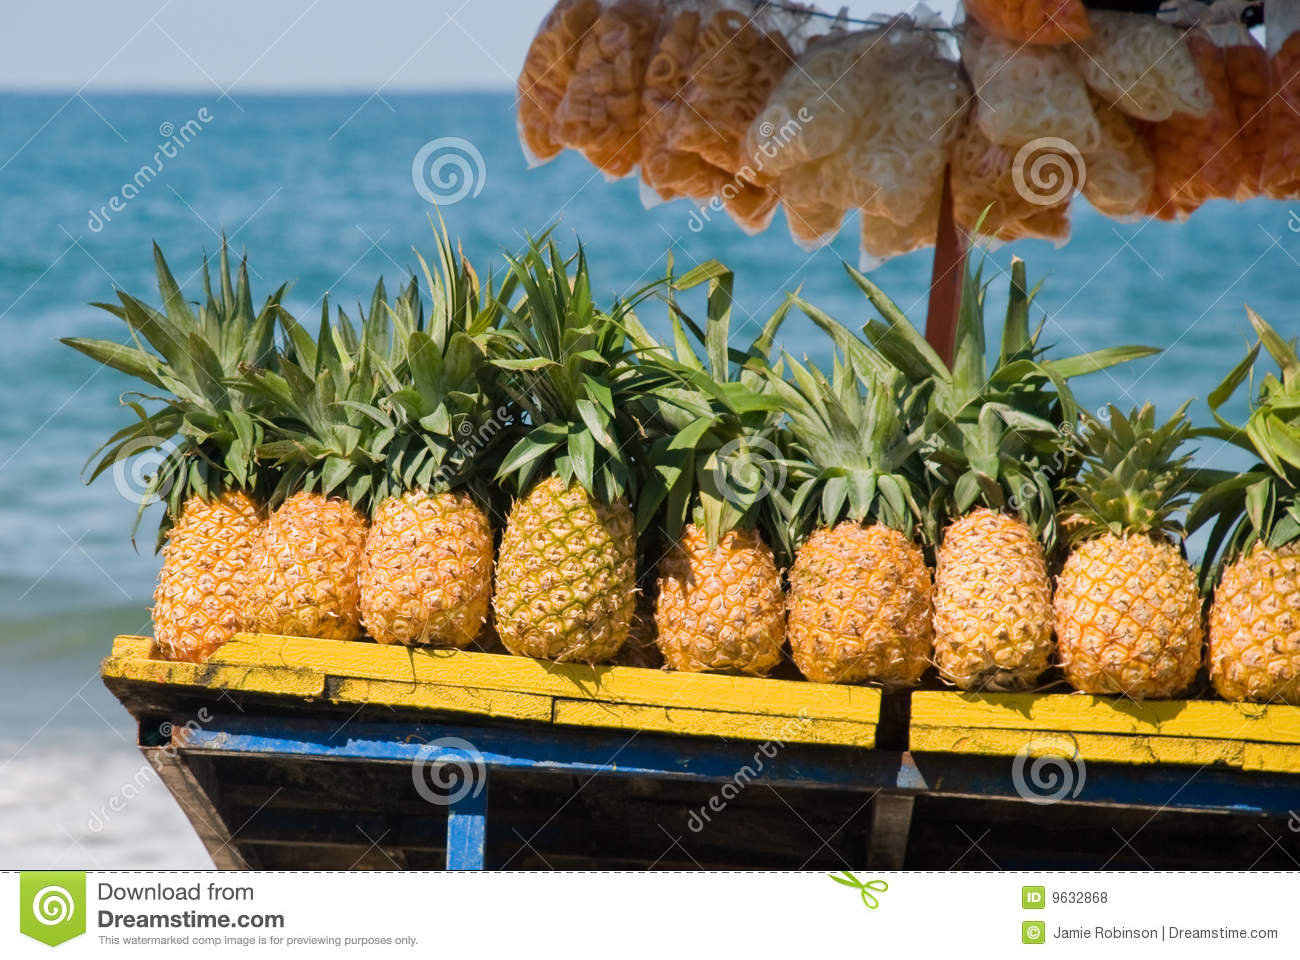 Pineapples for sale on tropical beach